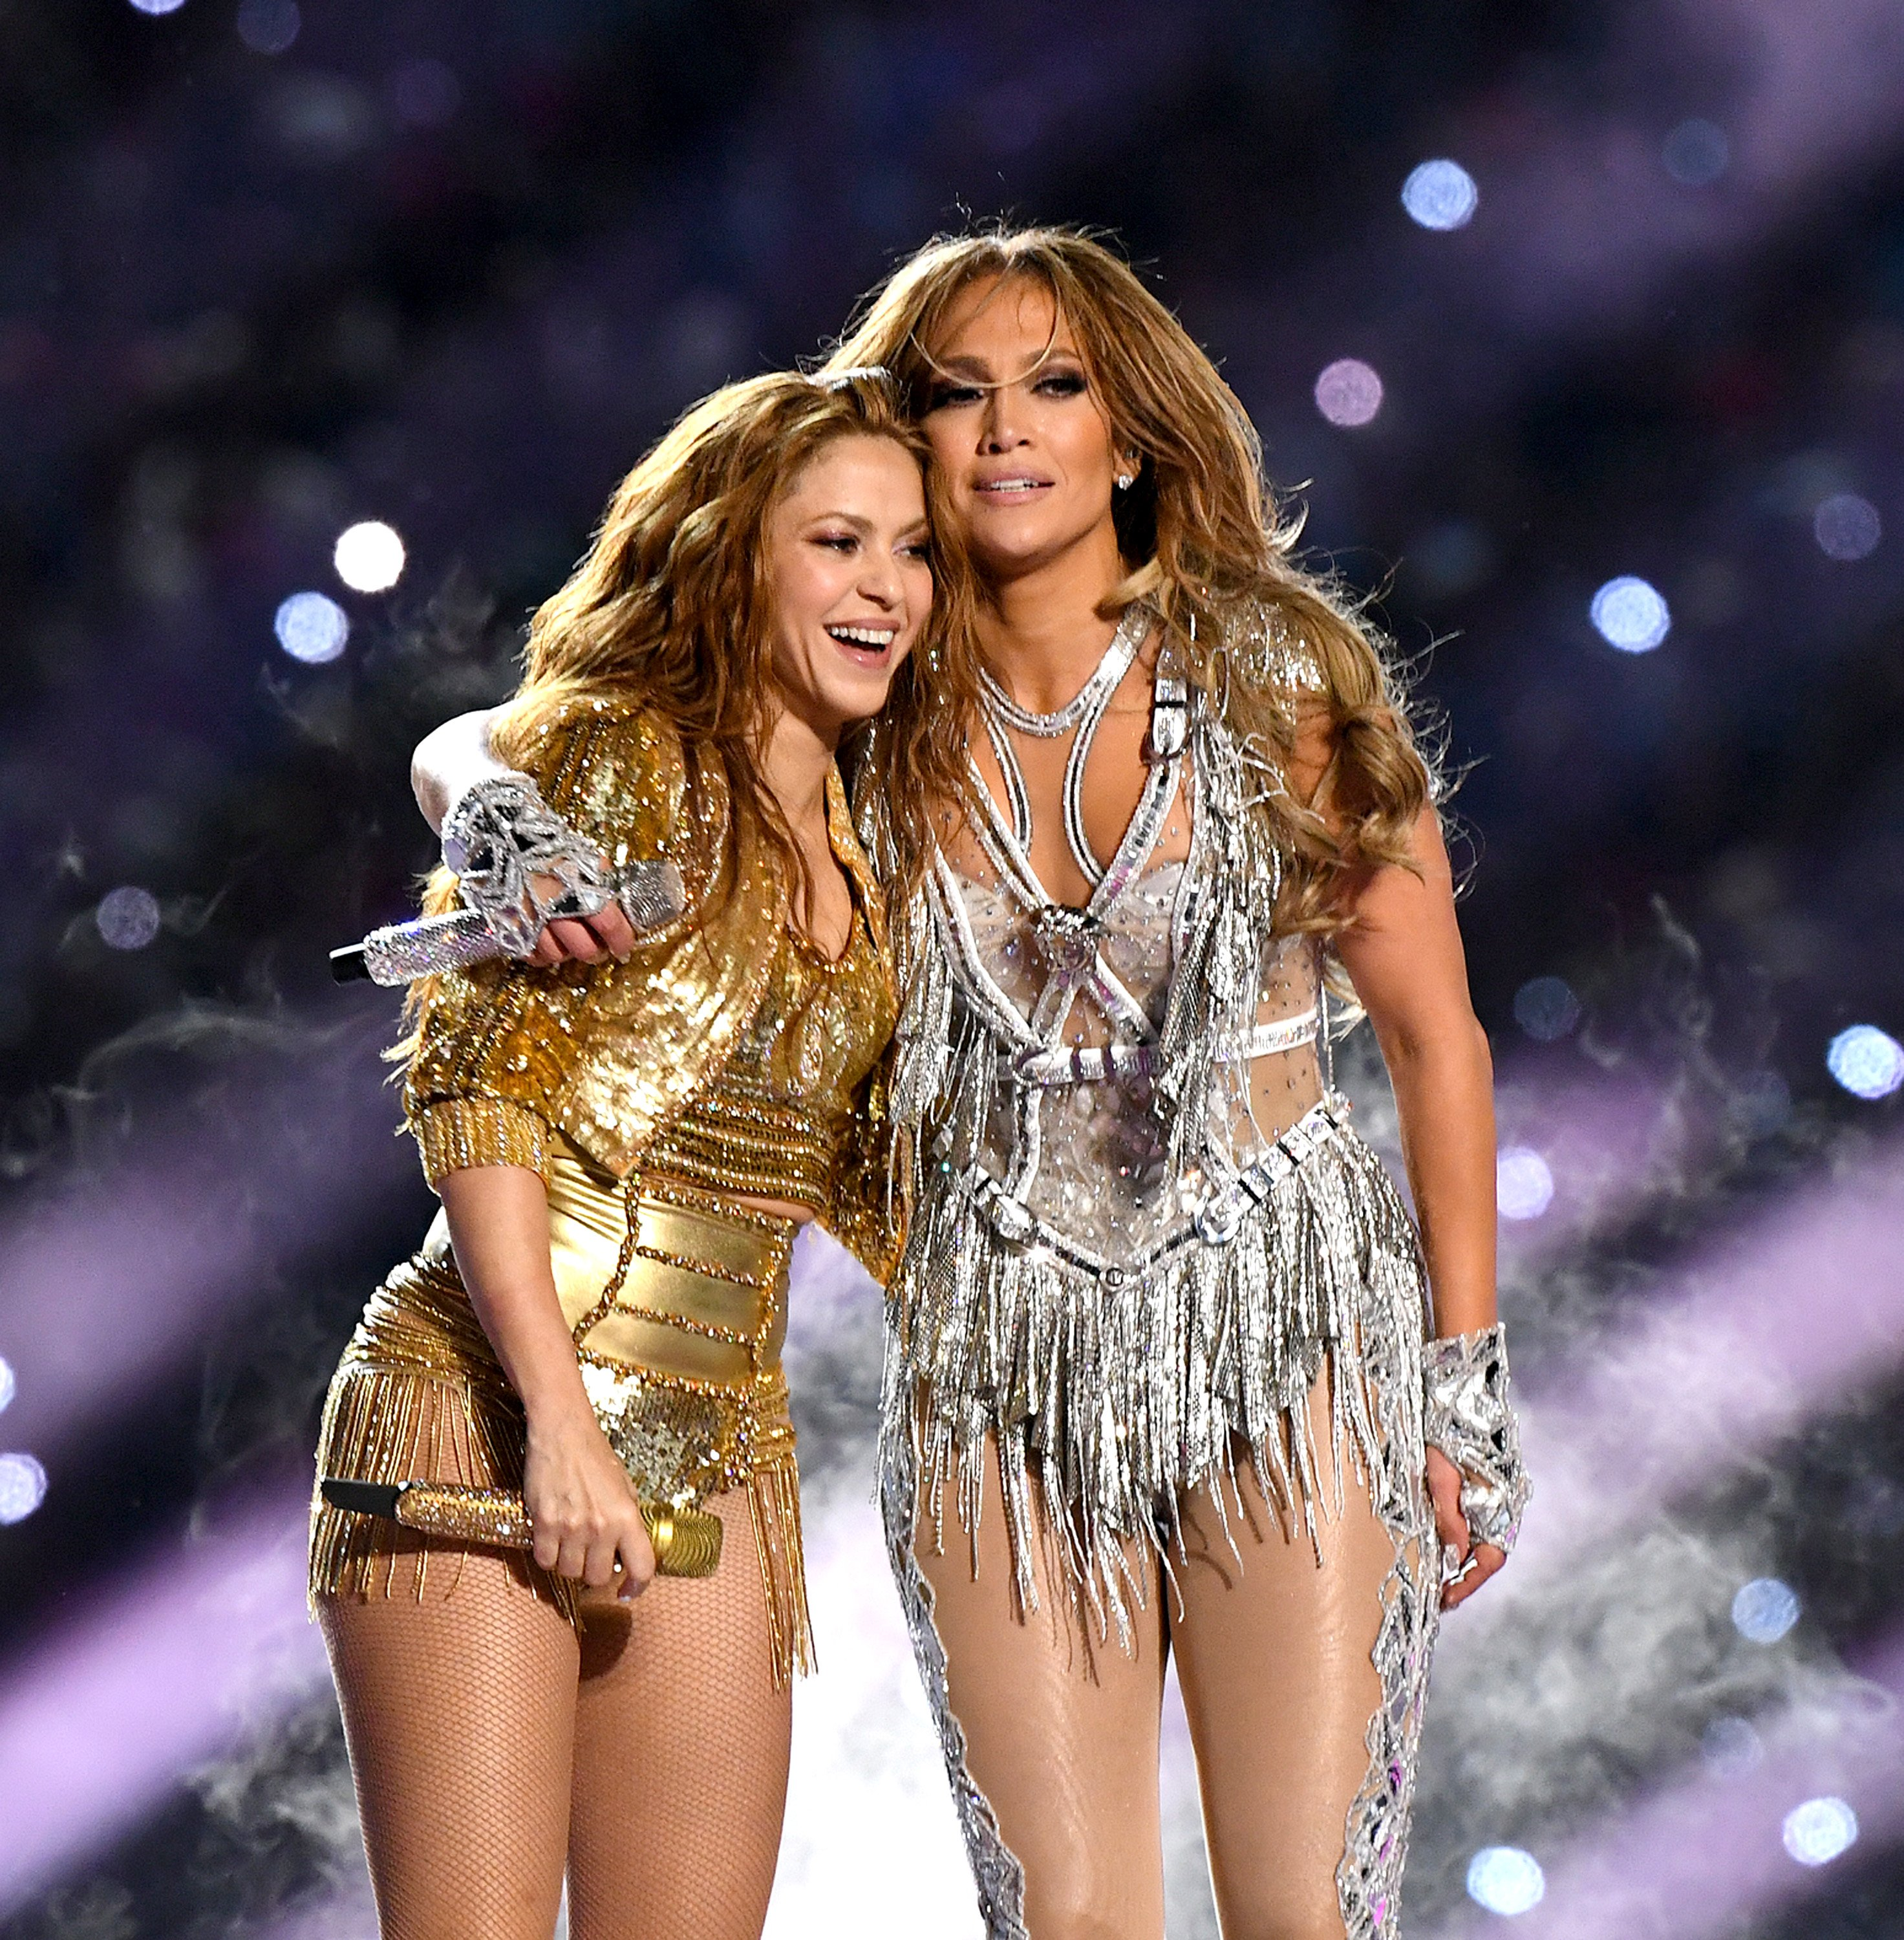 Image Credit: Getty Images / Shakira and Jennifer Lopez after performing at the Super Bowl LIV Halftime Show.